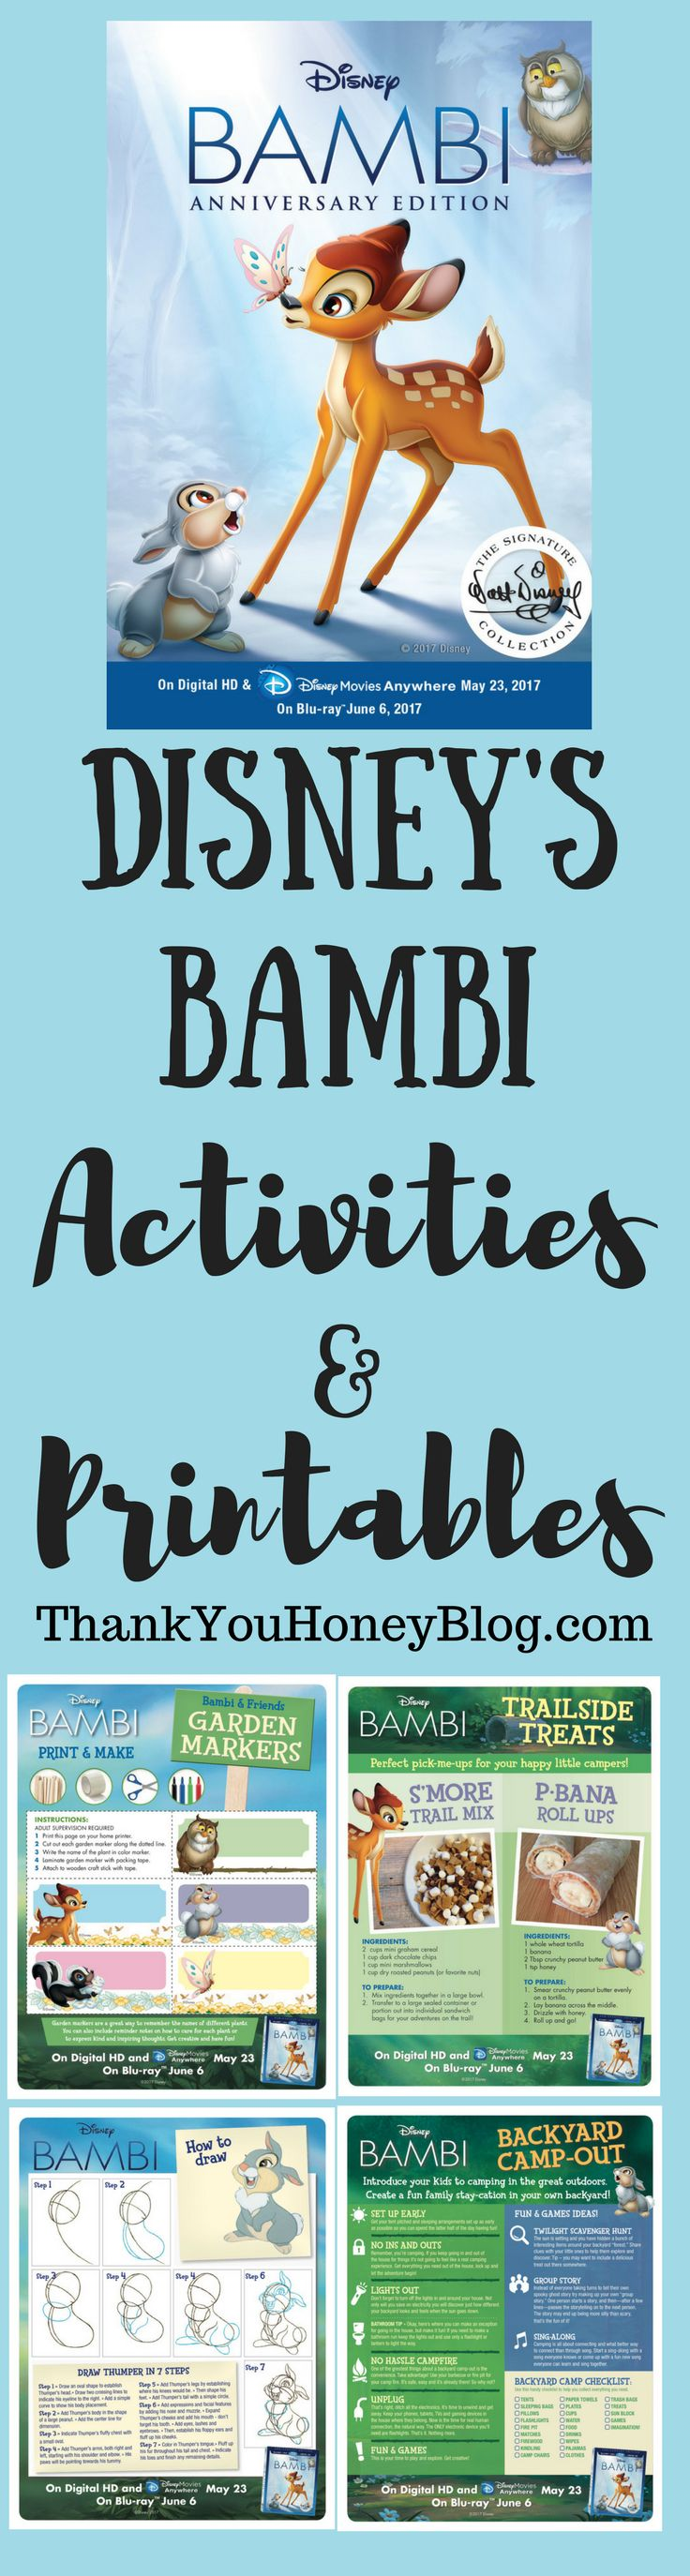 BAMBI Kids Activities & Printables,  Click through & PIN IT! Follow Us on Pinterest + Subscribe to ThankYouHoneyBlog{dot}com,  New Release, Disney, Blue-Ray, DVD, BAMBI Kids Activities & Printables, Activities, Kids Activities, Printables, Video, Movie, Disney Home Movies,